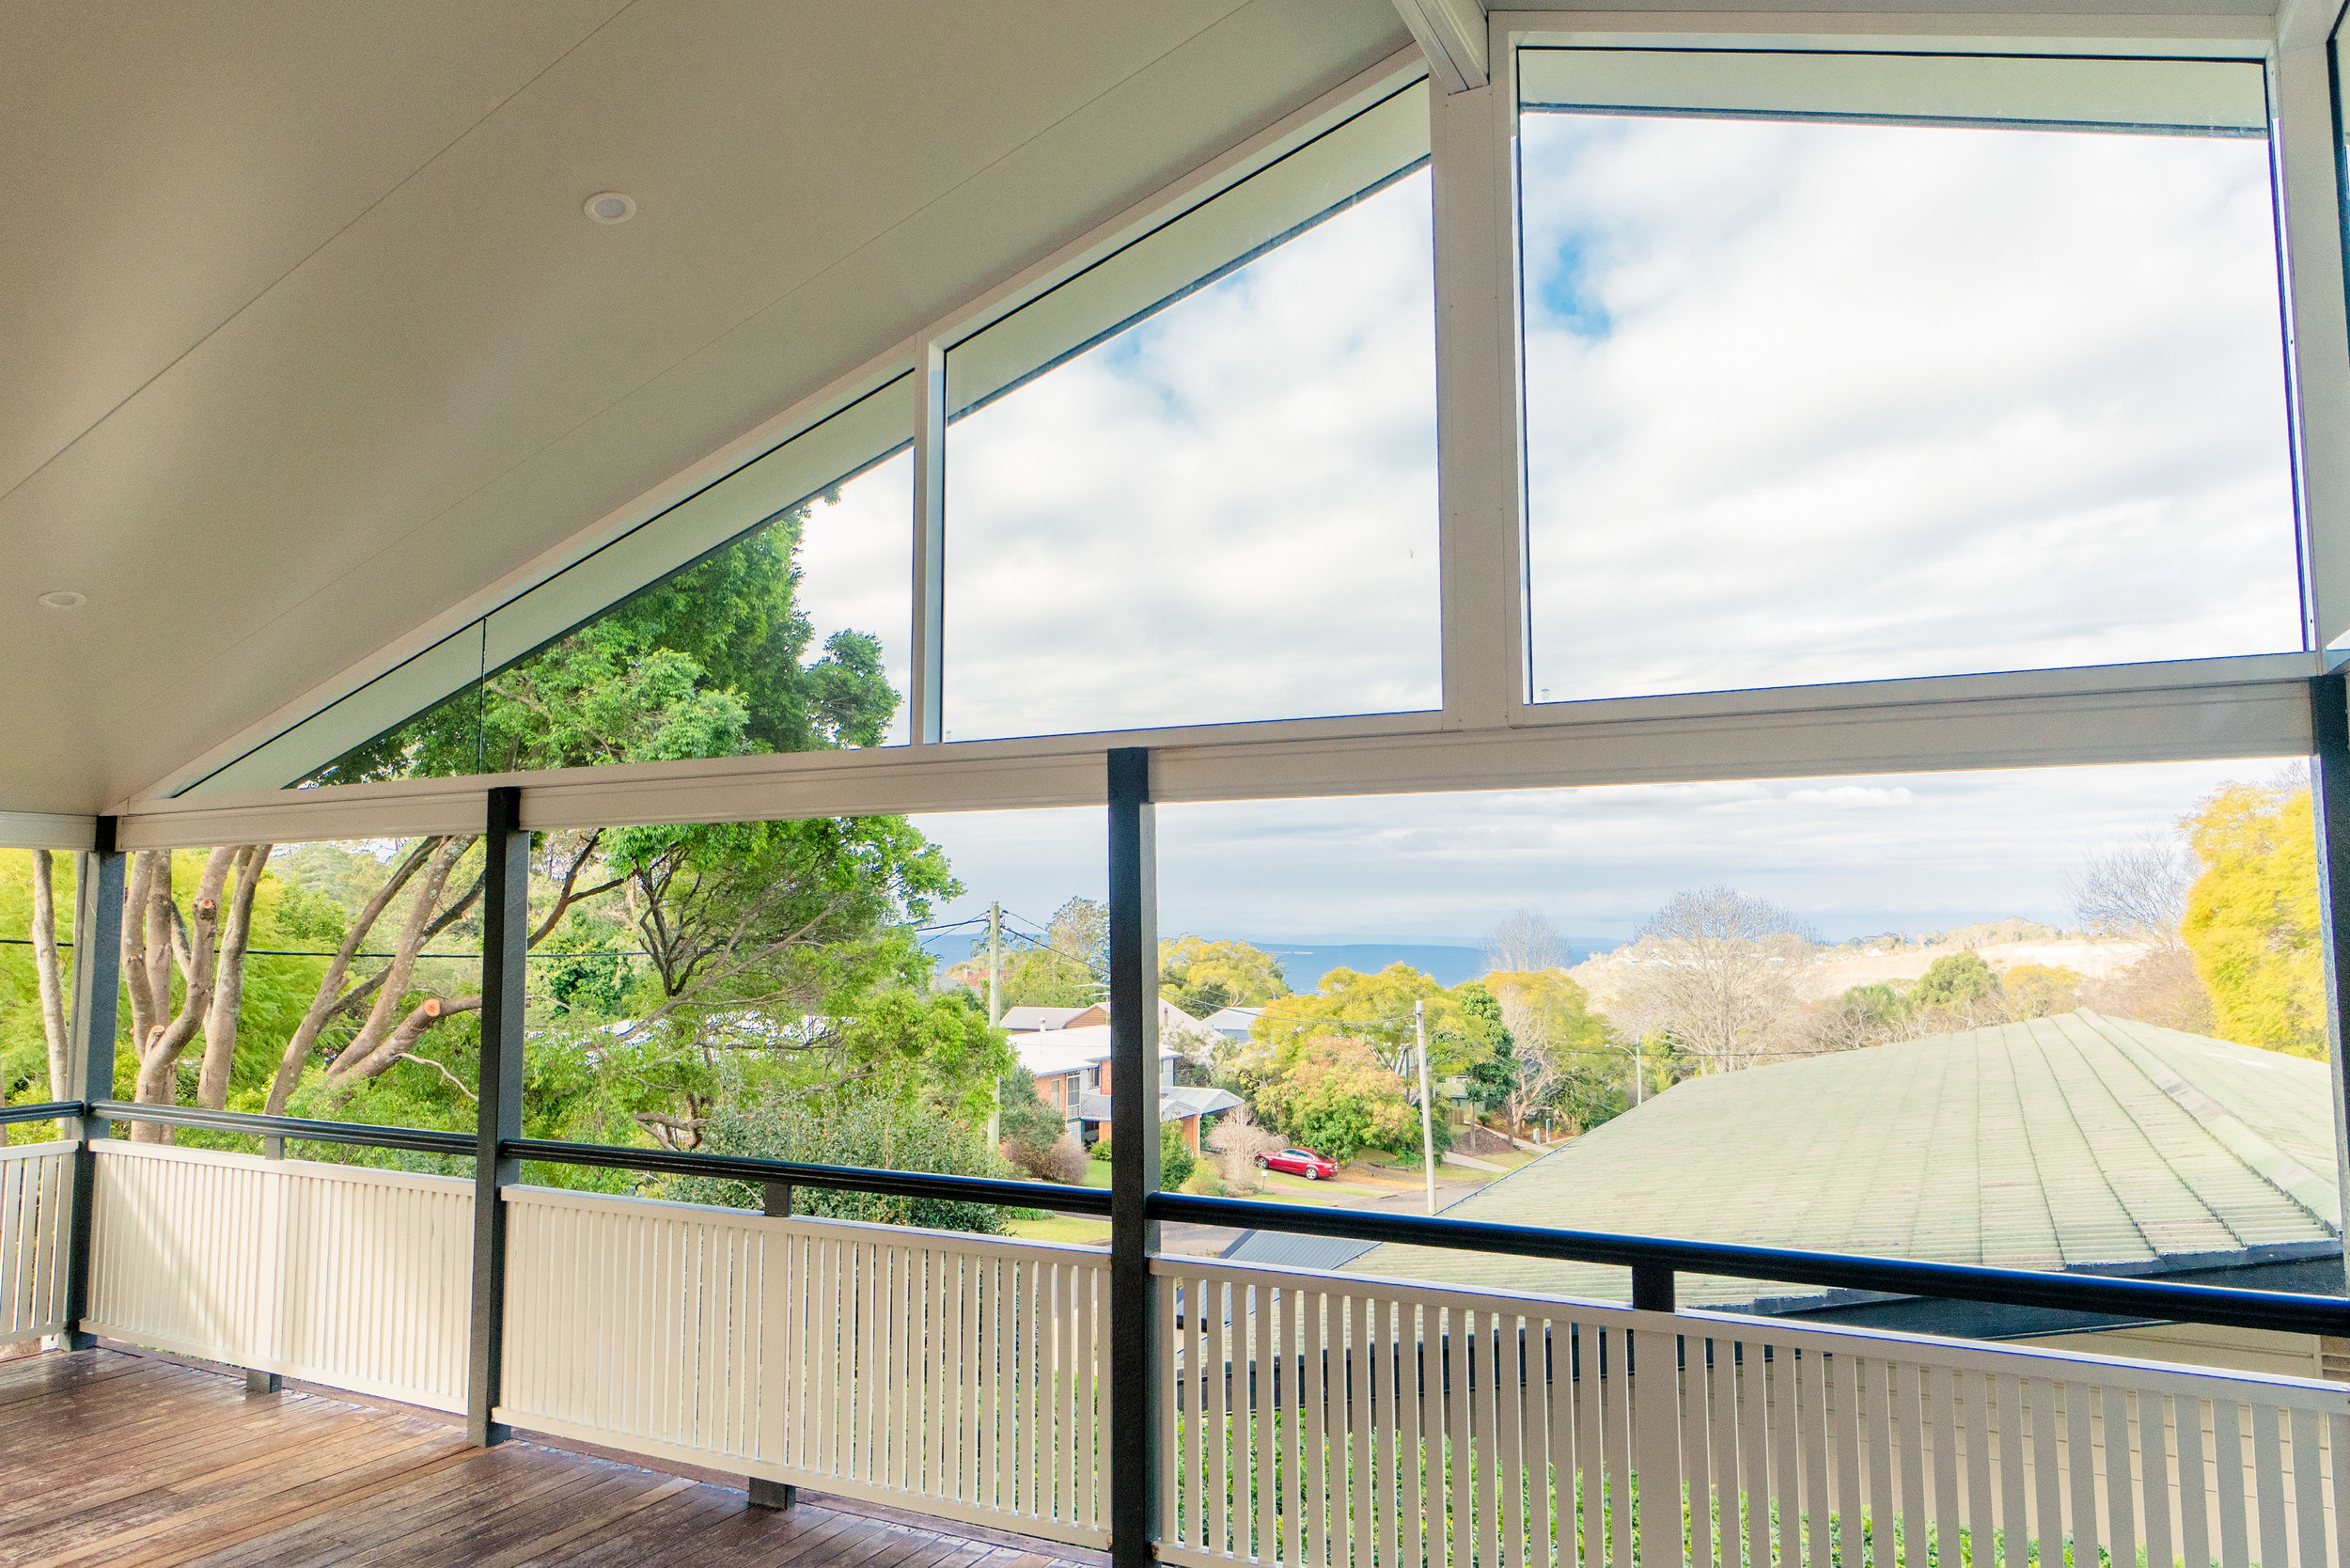 Is There A View? - Do you have a view that you are wanting to capture or capitalise on? How and where can you position the deck to make the most of it?